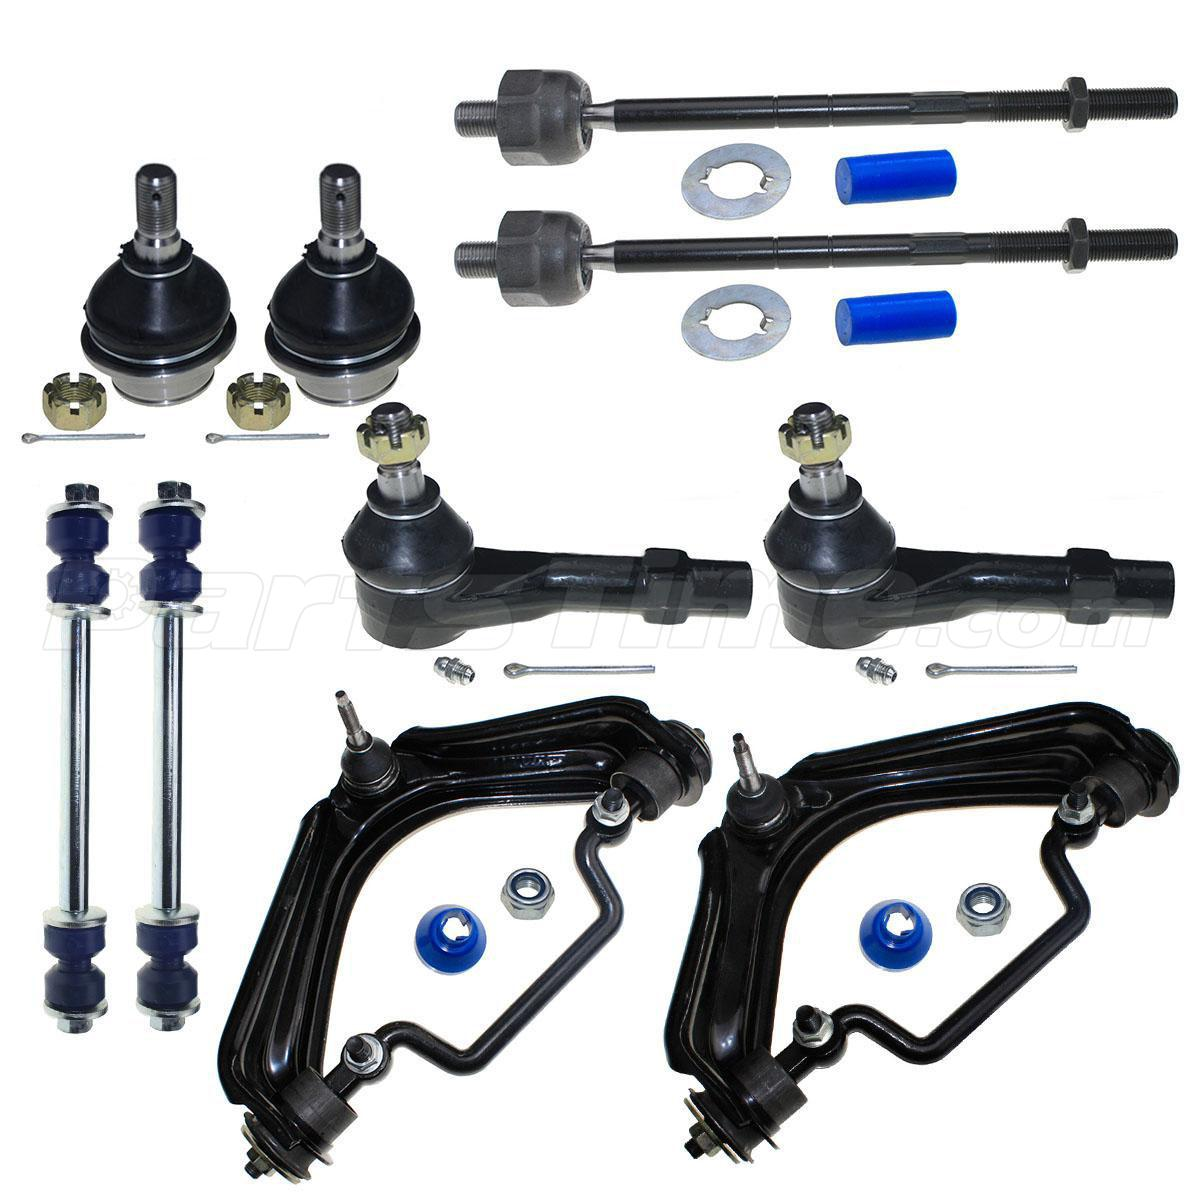 2005 Mercury Mountaineer Suspension: Brand New Front Suspension Kit For 2002 05 Ford Explorer 4